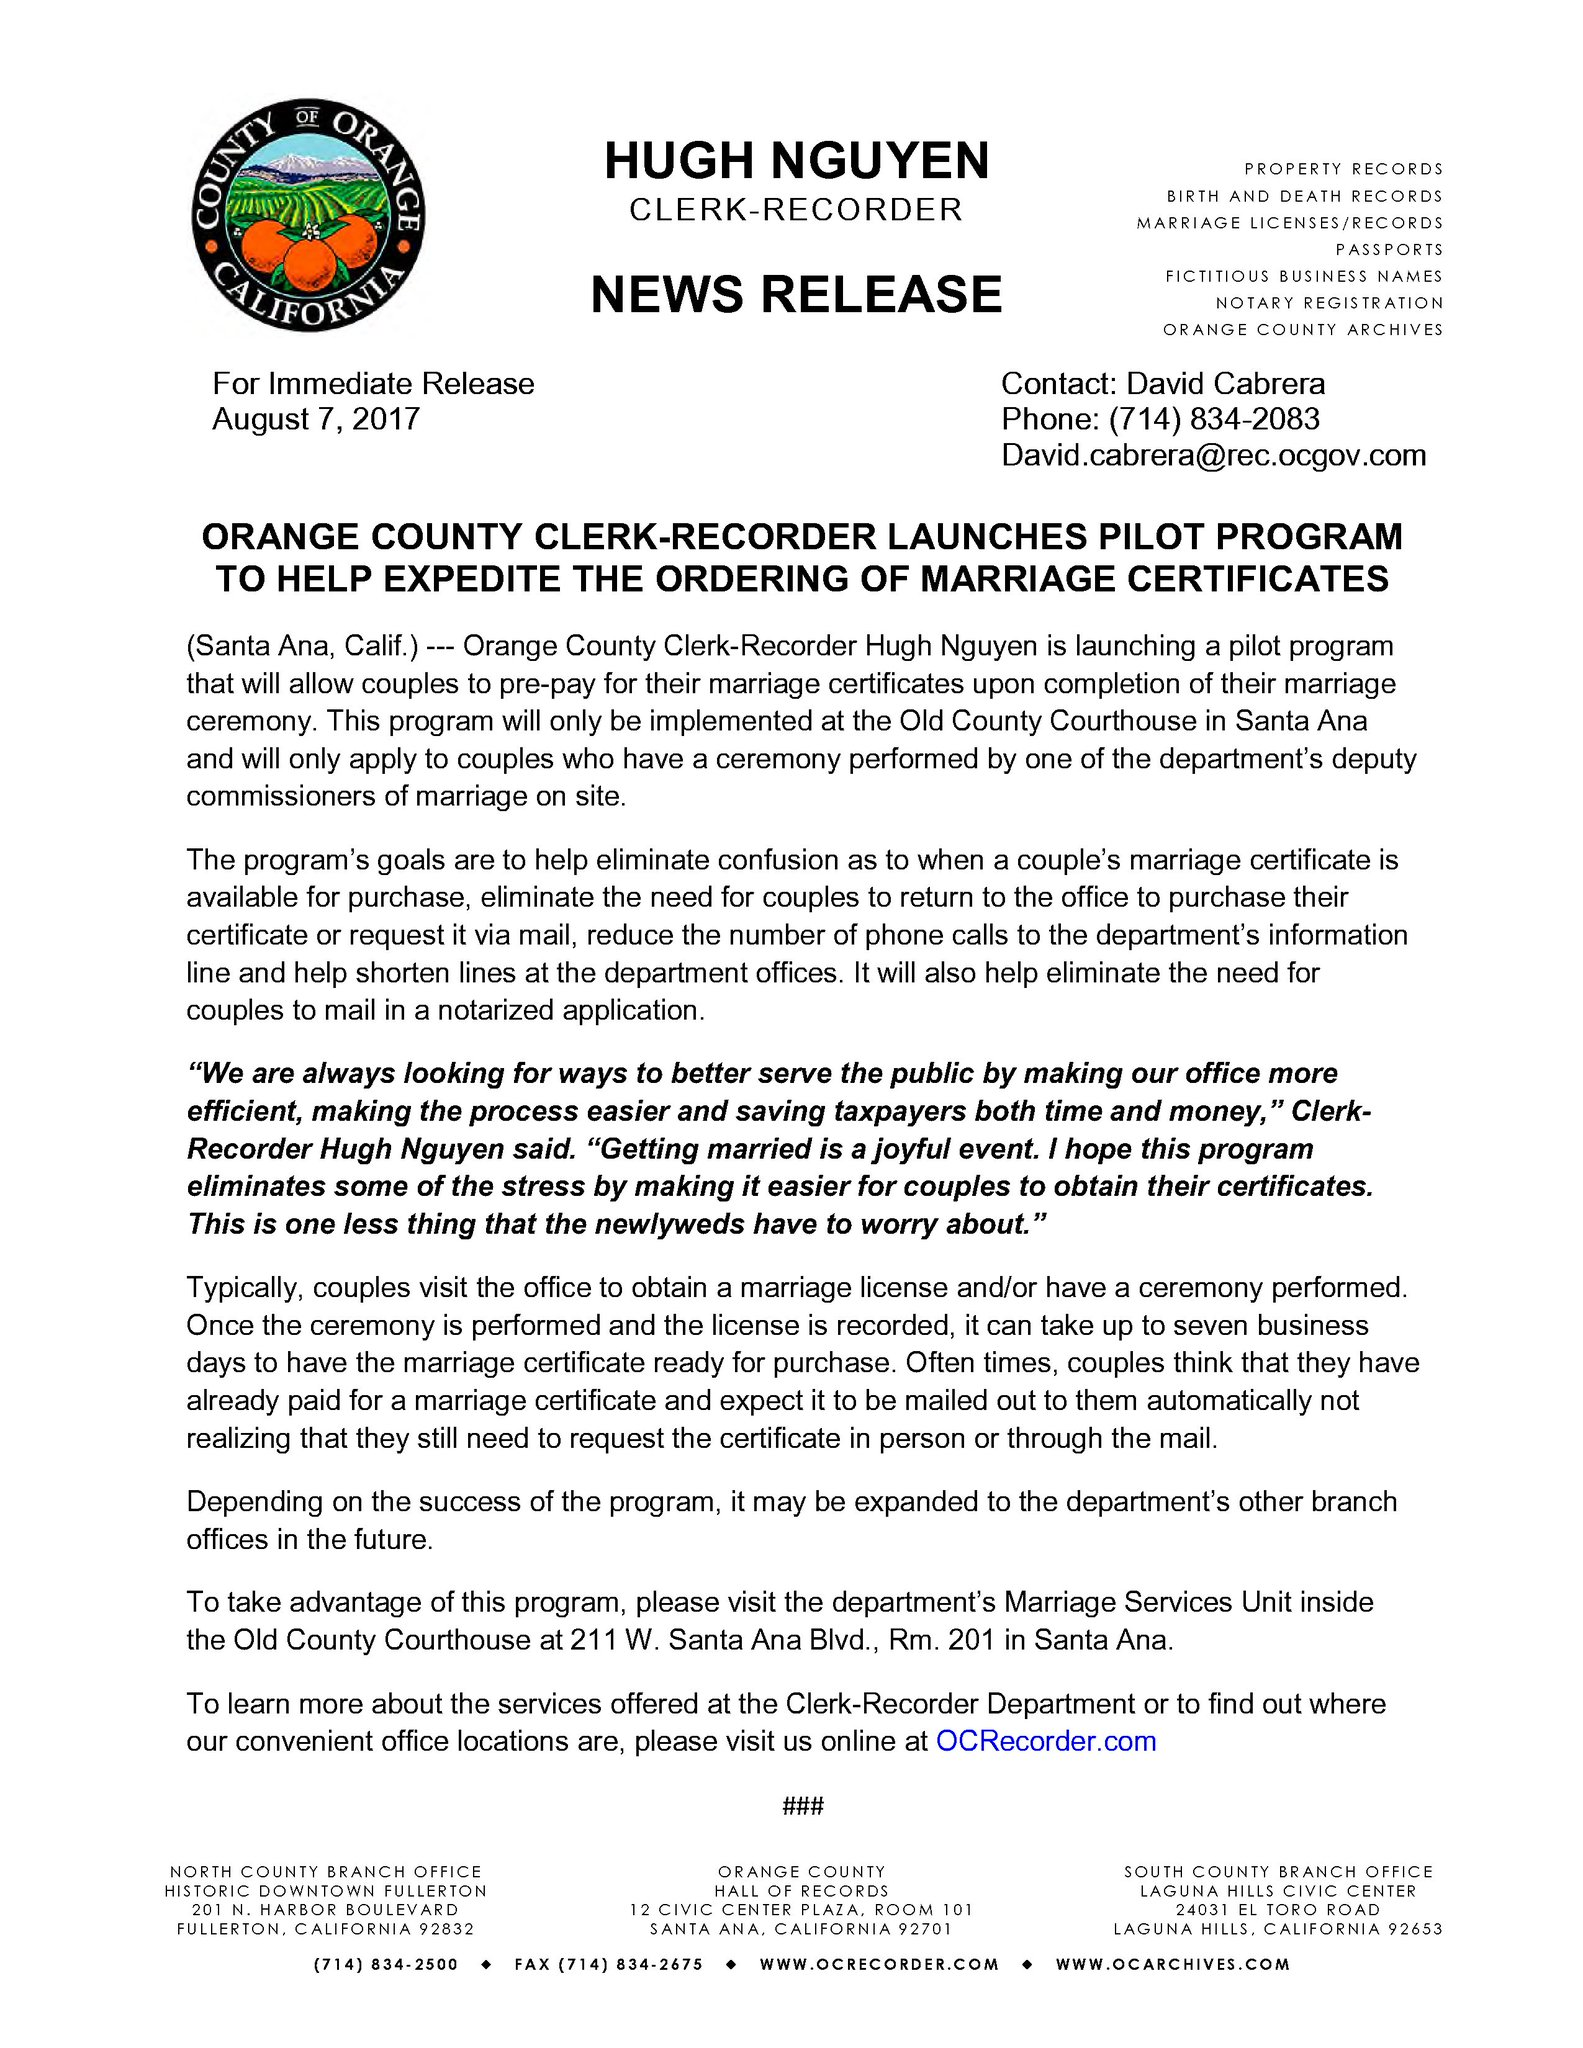 Oc clerk recorder on twitter orange county clerk recorder oc clerk recorder on twitter orange county clerk recorder launches pilot program to help expedite the ordering of marriage certificates aiddatafo Images